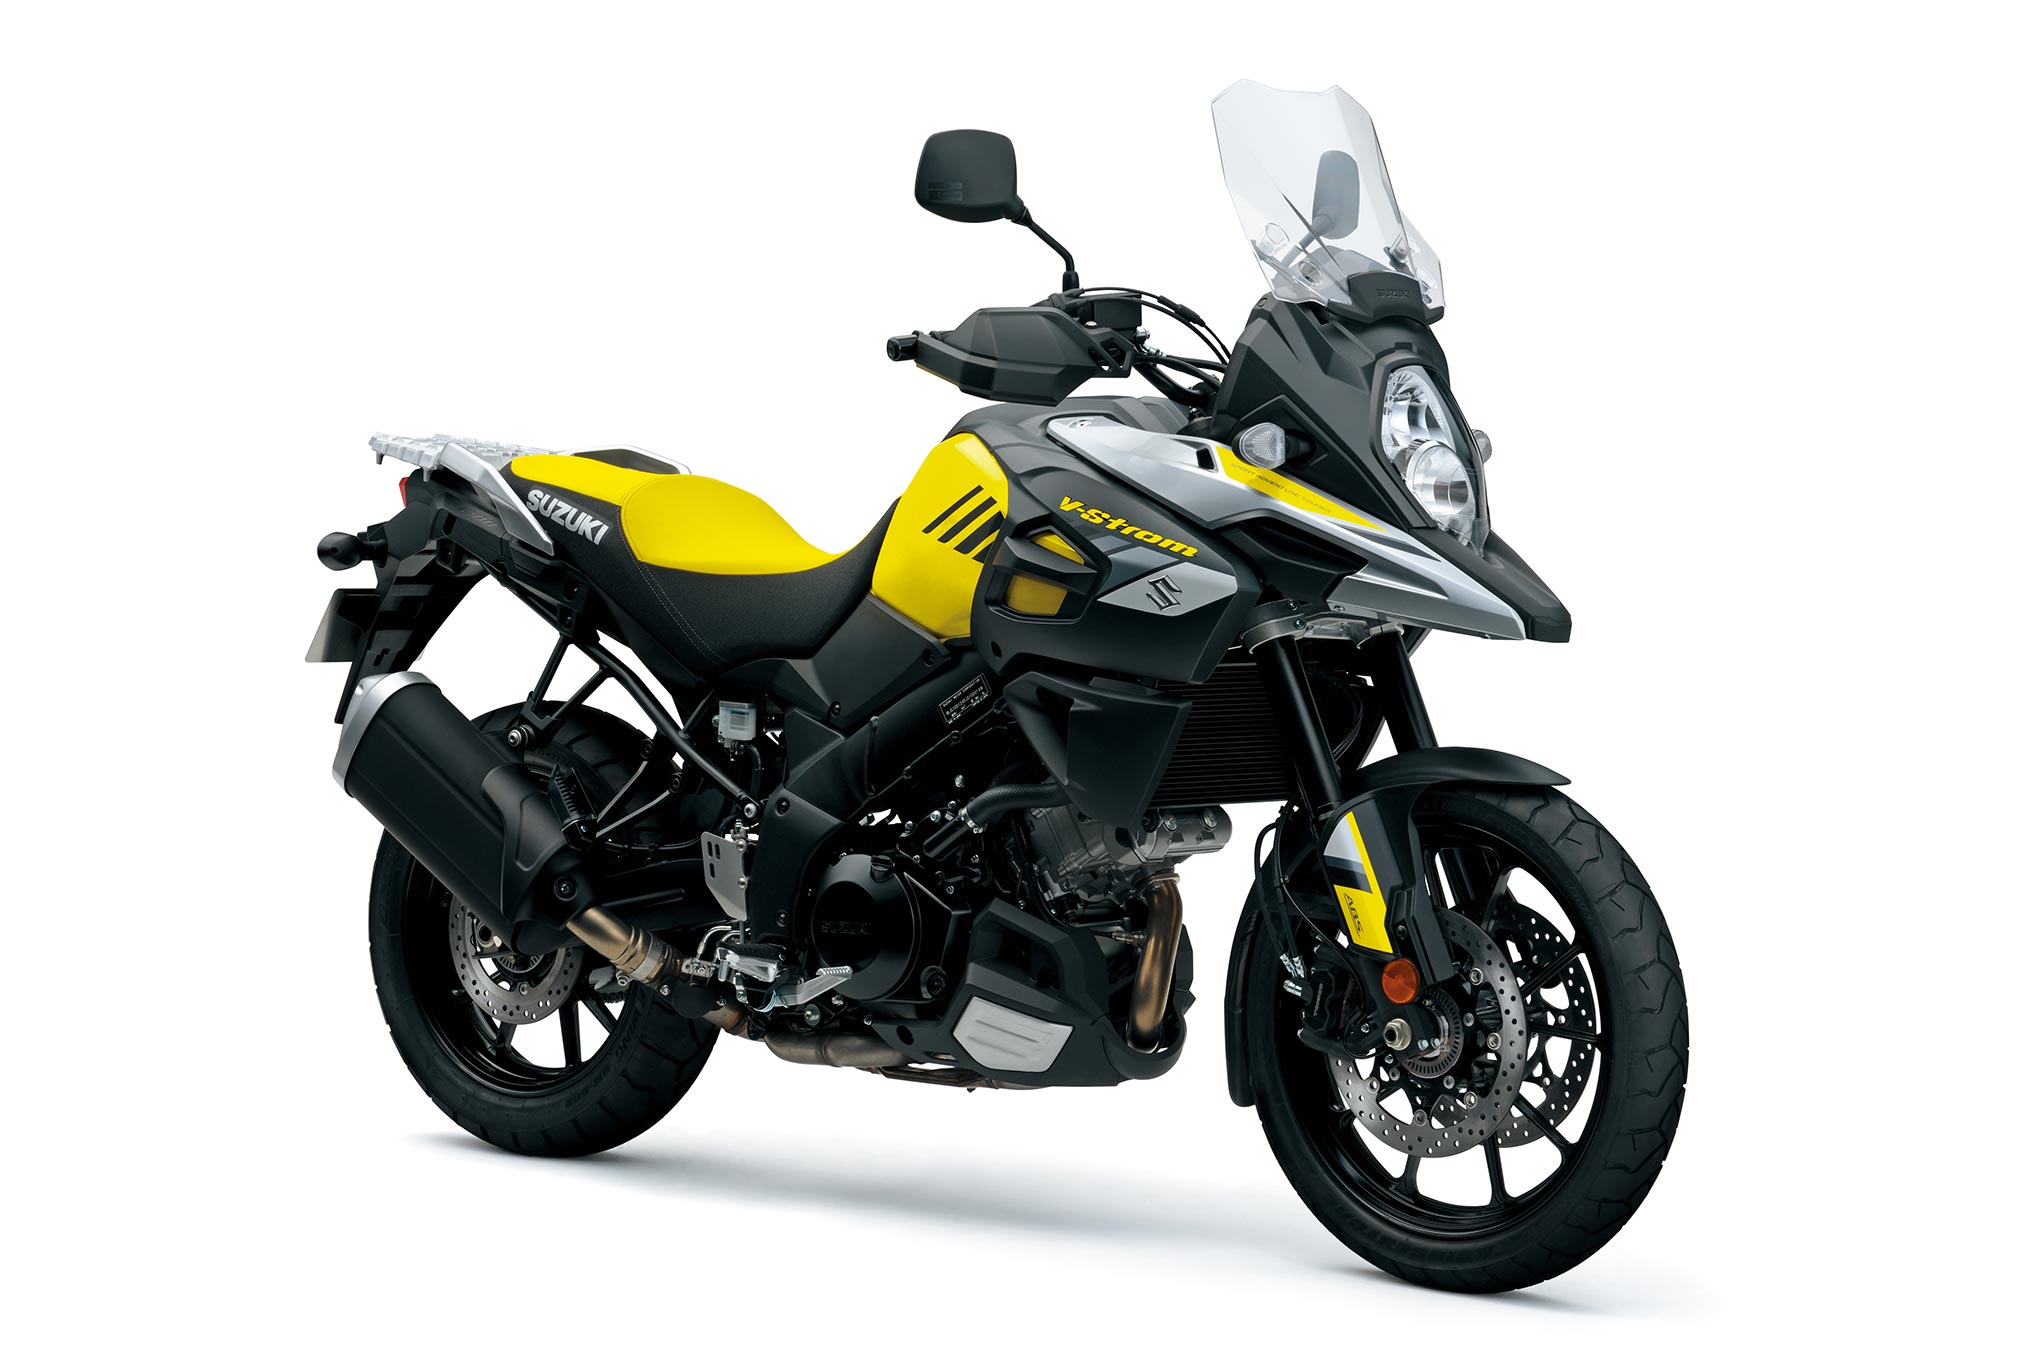 2018 suzuki v strom 1000 review. Black Bedroom Furniture Sets. Home Design Ideas